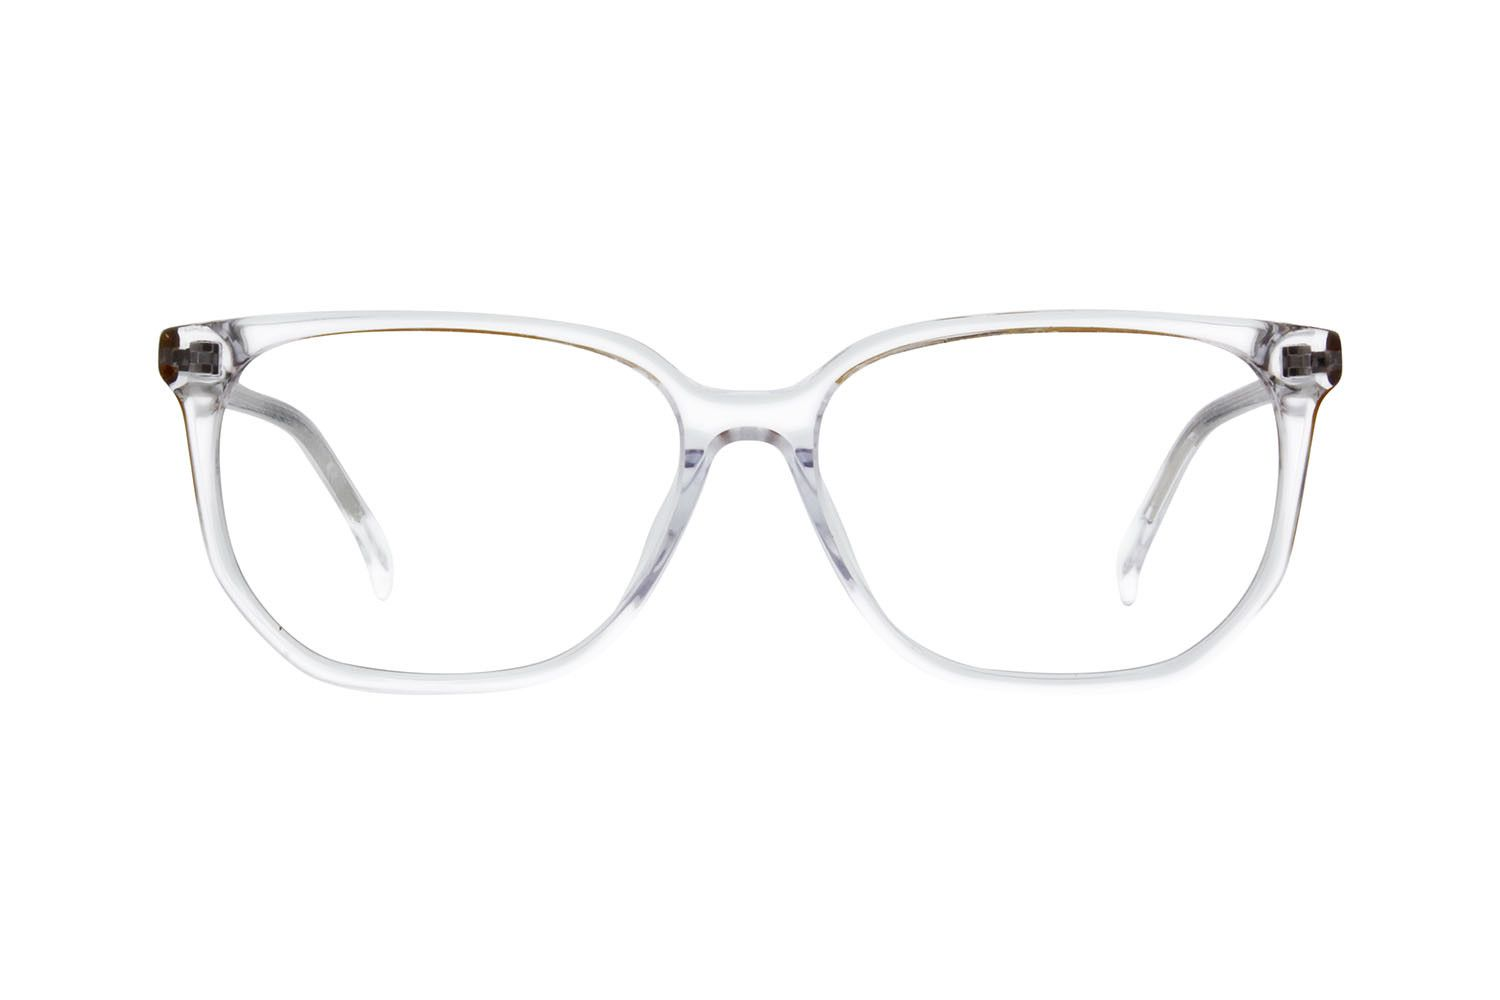 eea4479fdd Translucent Rectangle Glasses  4424723